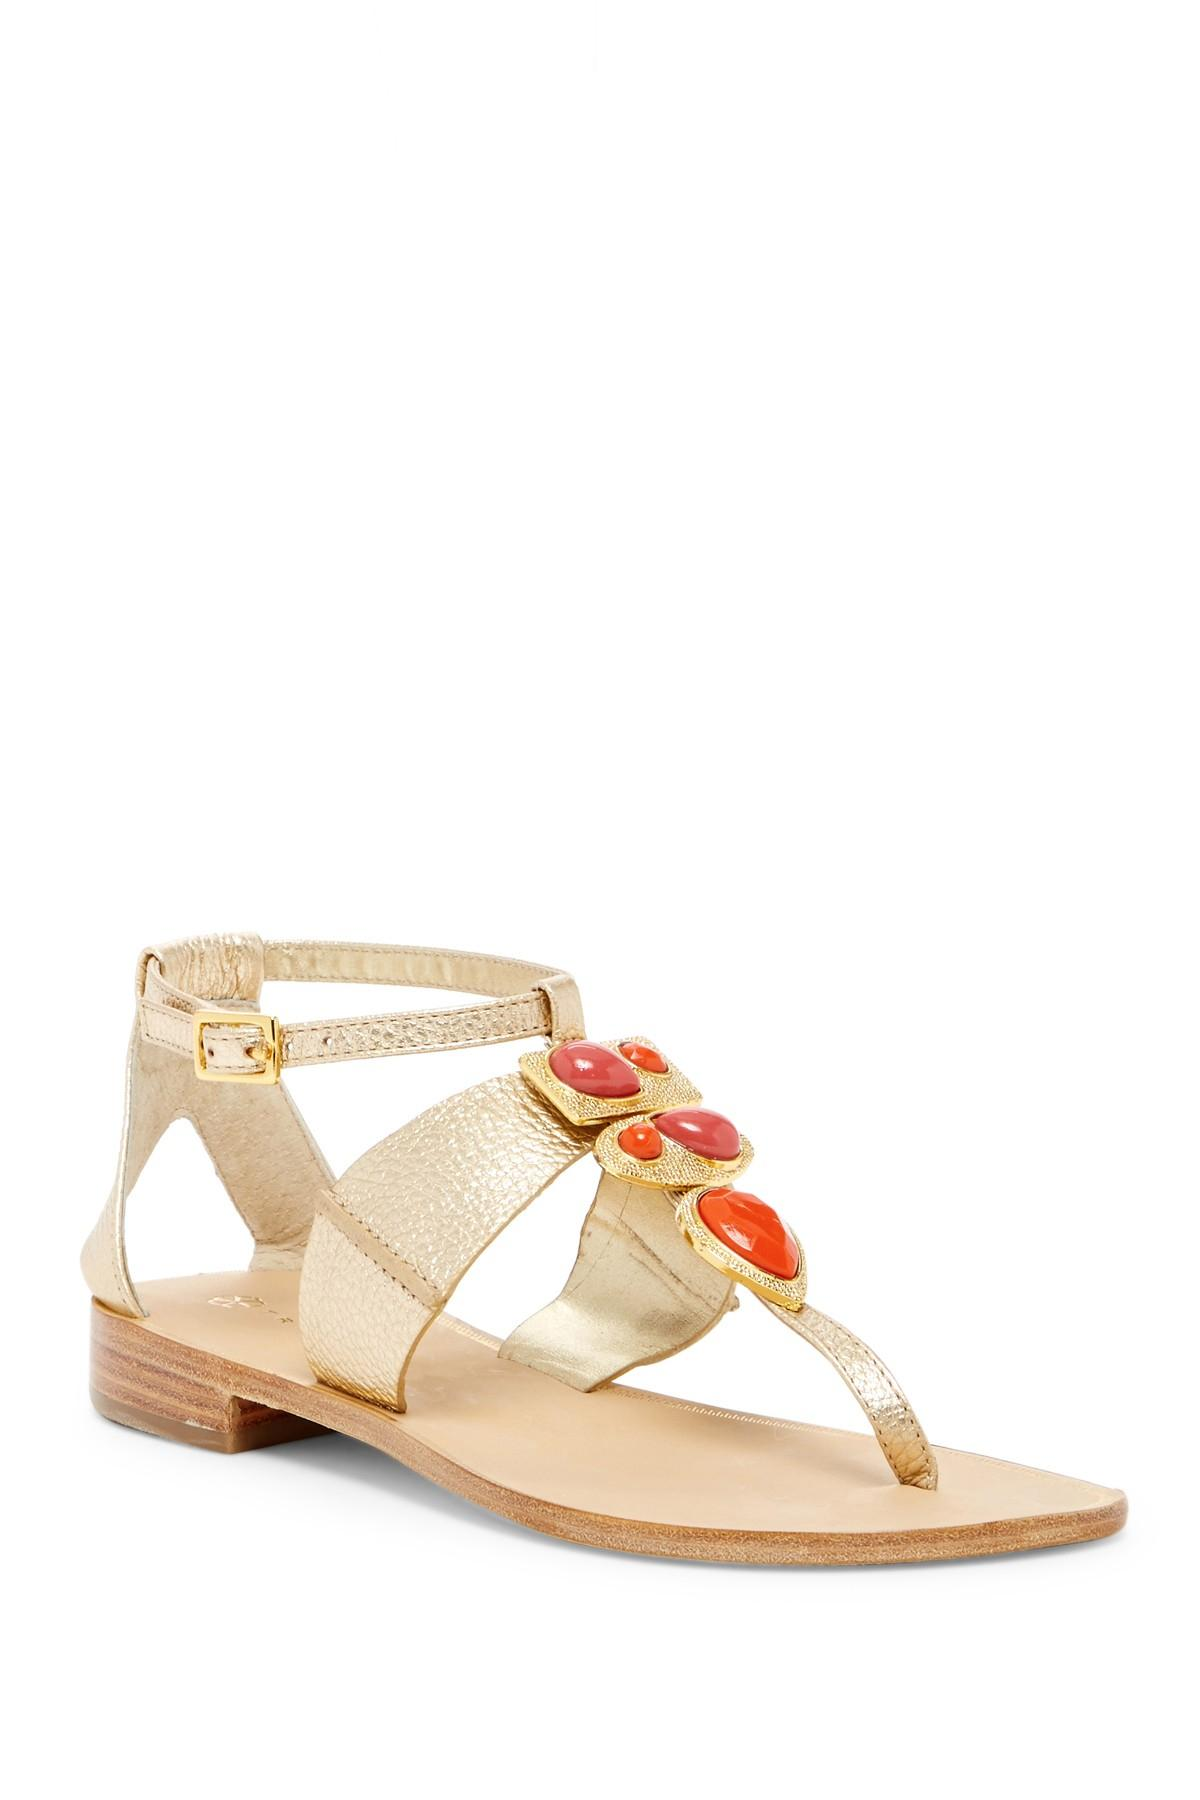 Trina Turk Gold All About That Embellished Sandal TyKlec